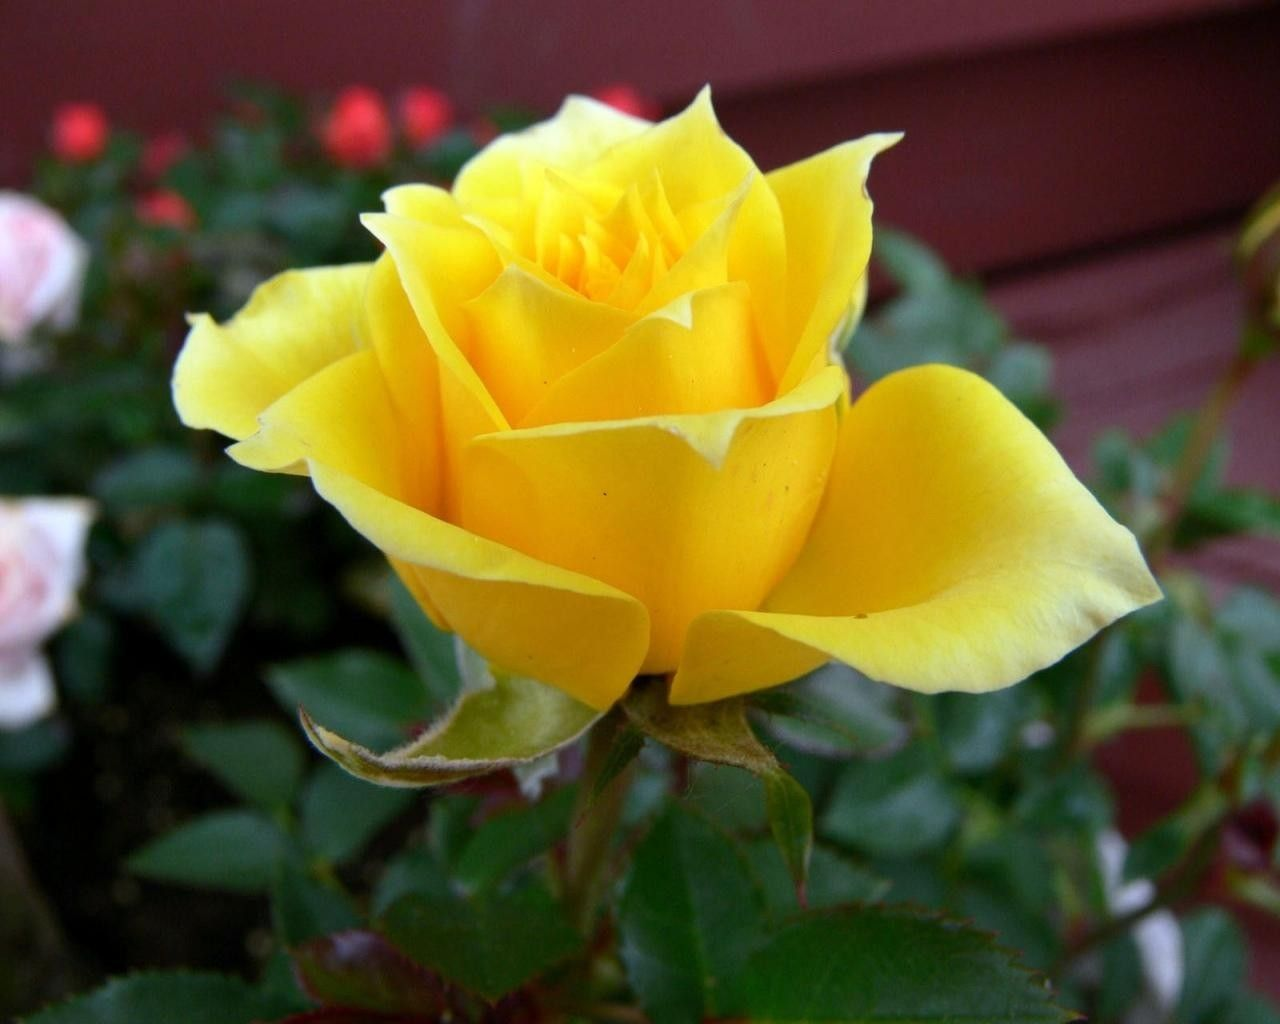 Yellow roses flowers meaning flower meanings pictures and photos yellow roses flowers meaning flower meanings pictures and photos mightylinksfo